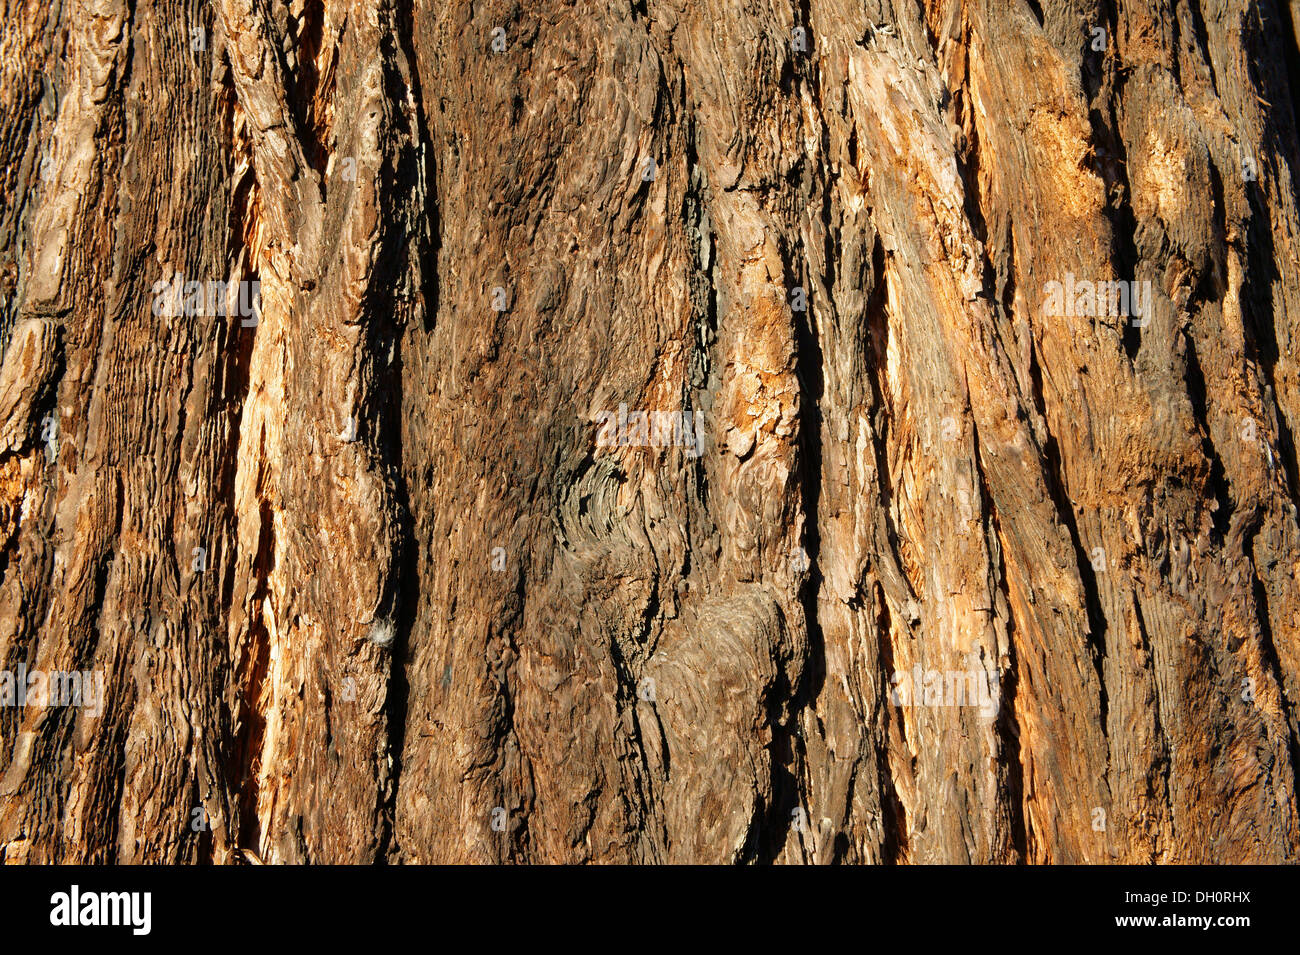 close-up-of-bark-on-the-trunk-of-a-calif